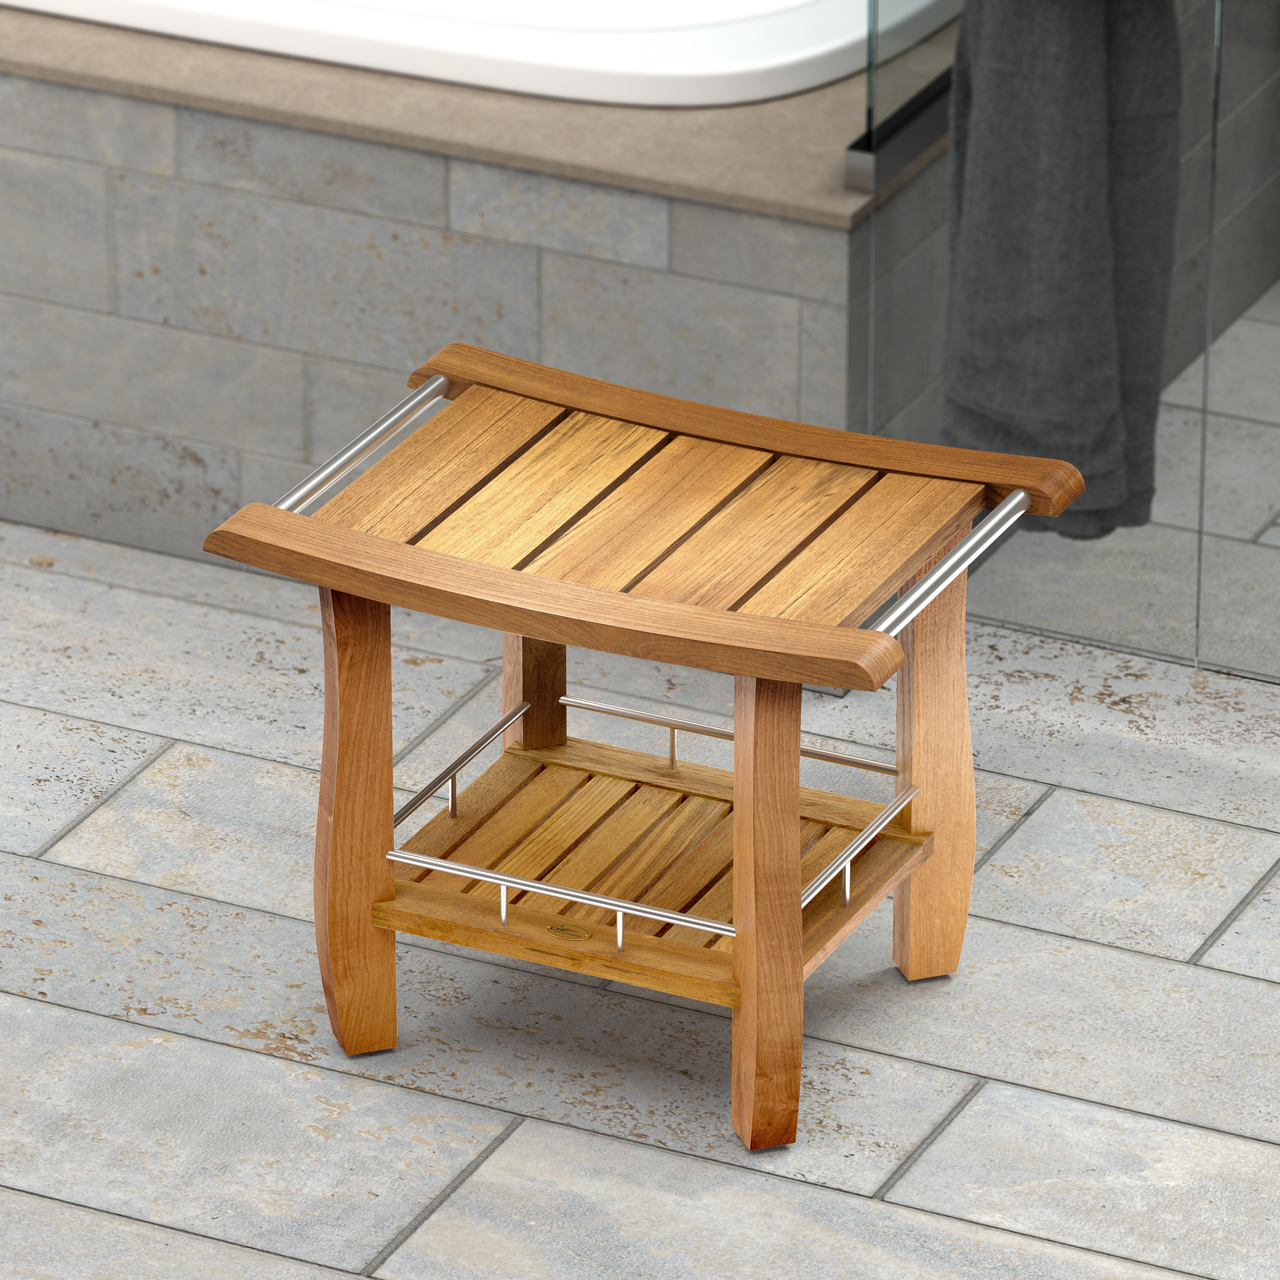 Bathroom Stools & Benches